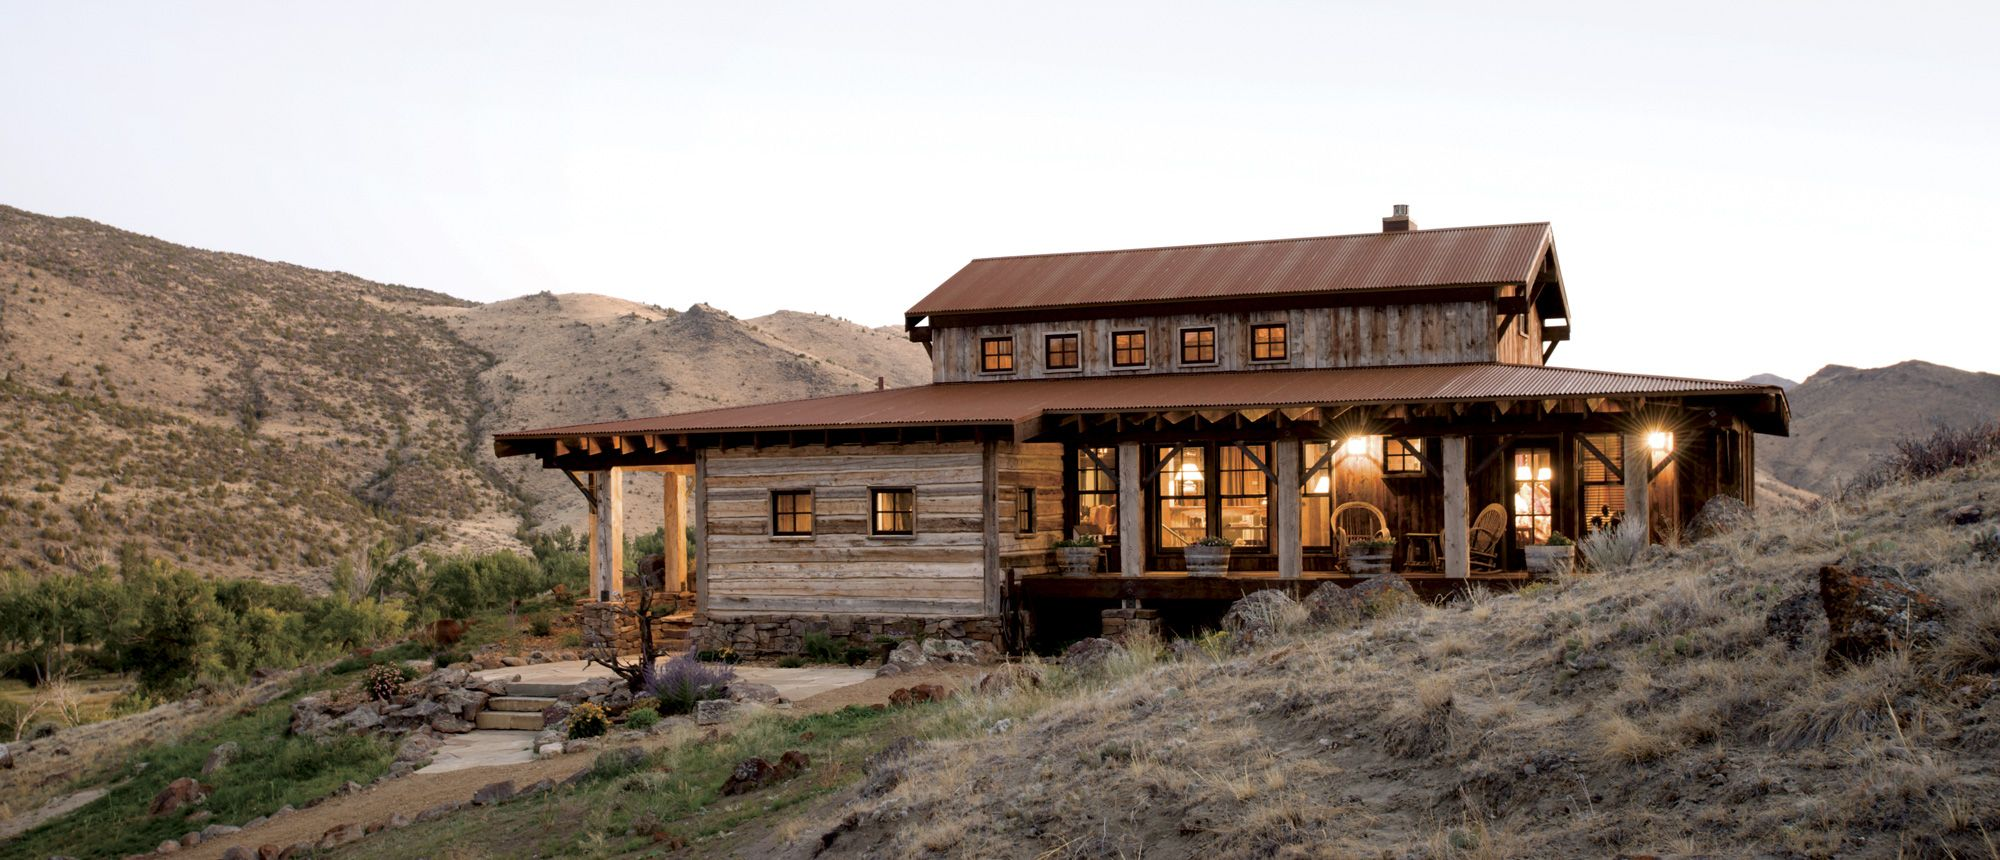 Western Design A Place To Belong Rustic Houses Exterior Country Farmhouse Style Ranch Style Homes